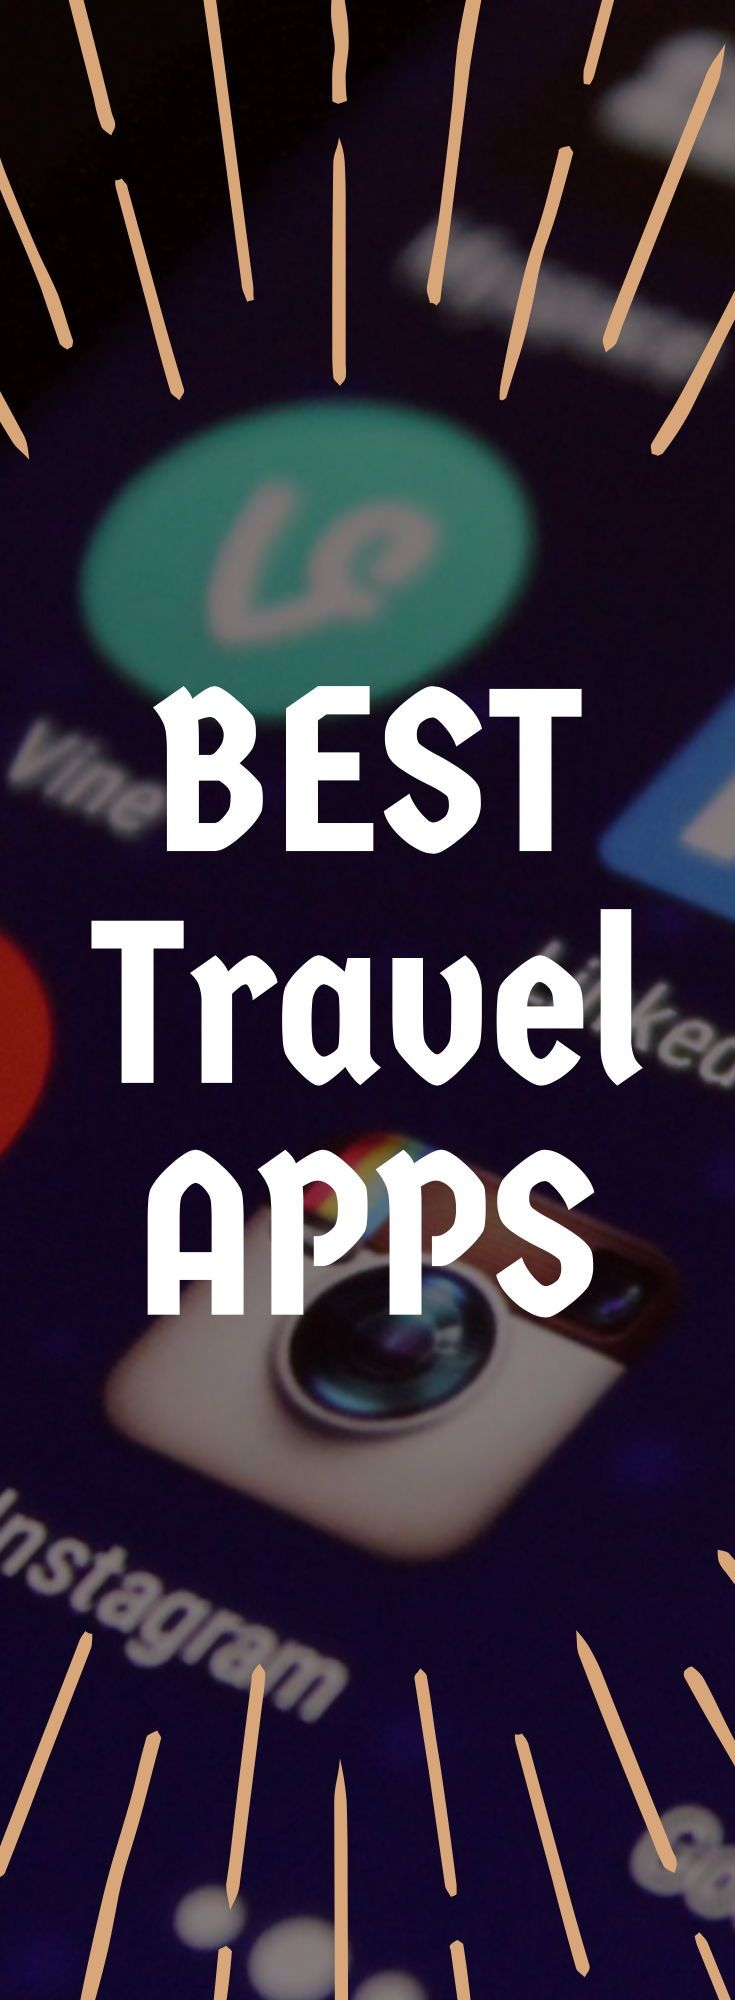 The Best Travel Apps We Love and Always Use. Book Airfare